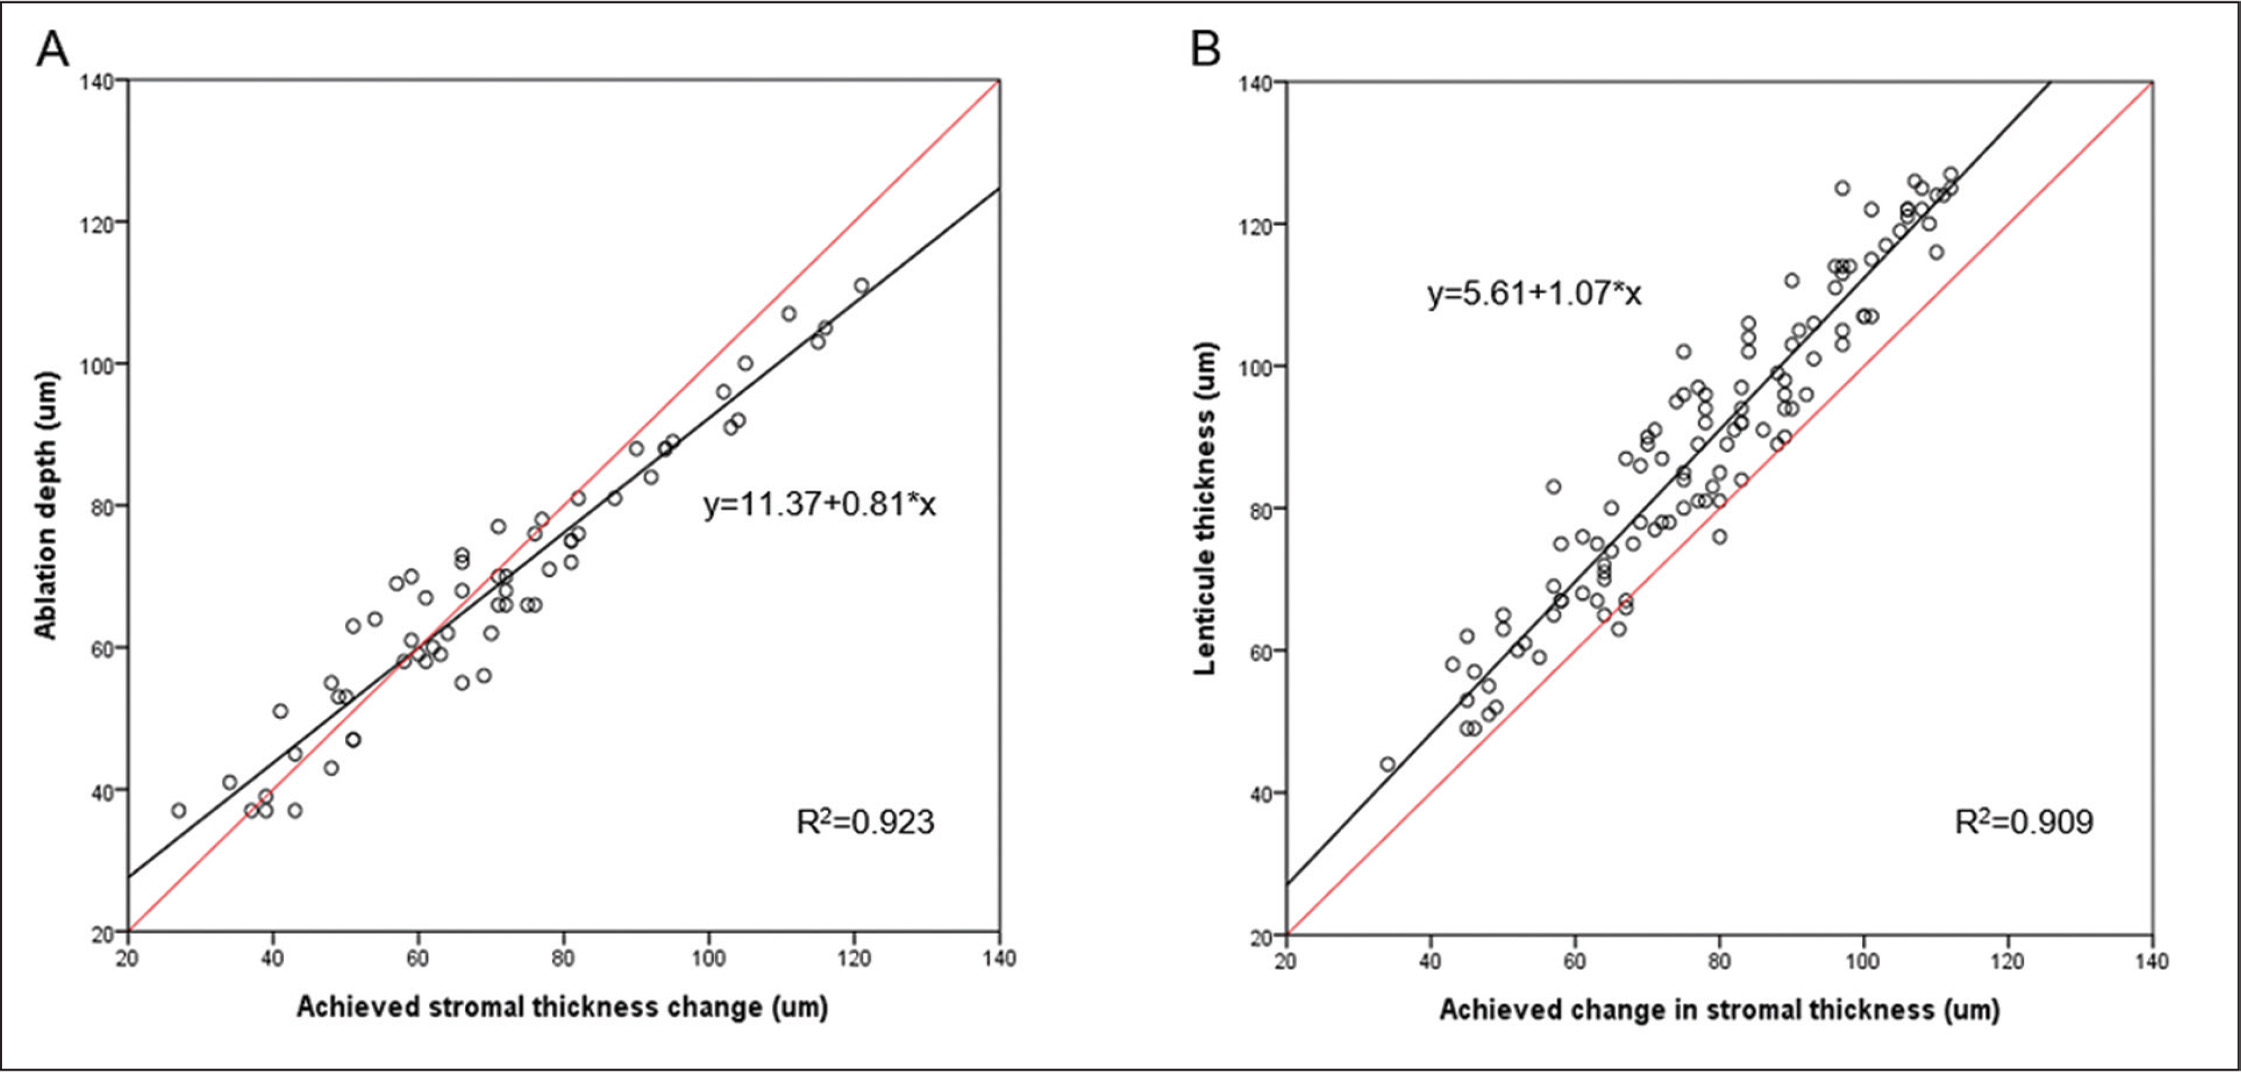 Scatter plot of achieved stromal thickness change versus planned ablation depth in femtosecond laser–assisted LASIK or lenticule thickness in small incision lenticule extraction. The red line represents equality between the measured stromal thickness change and the planned ablation depth or lenticule thickness. Points above the red line signify that the achieved stromal thickness change is less than the planned ablation depth.